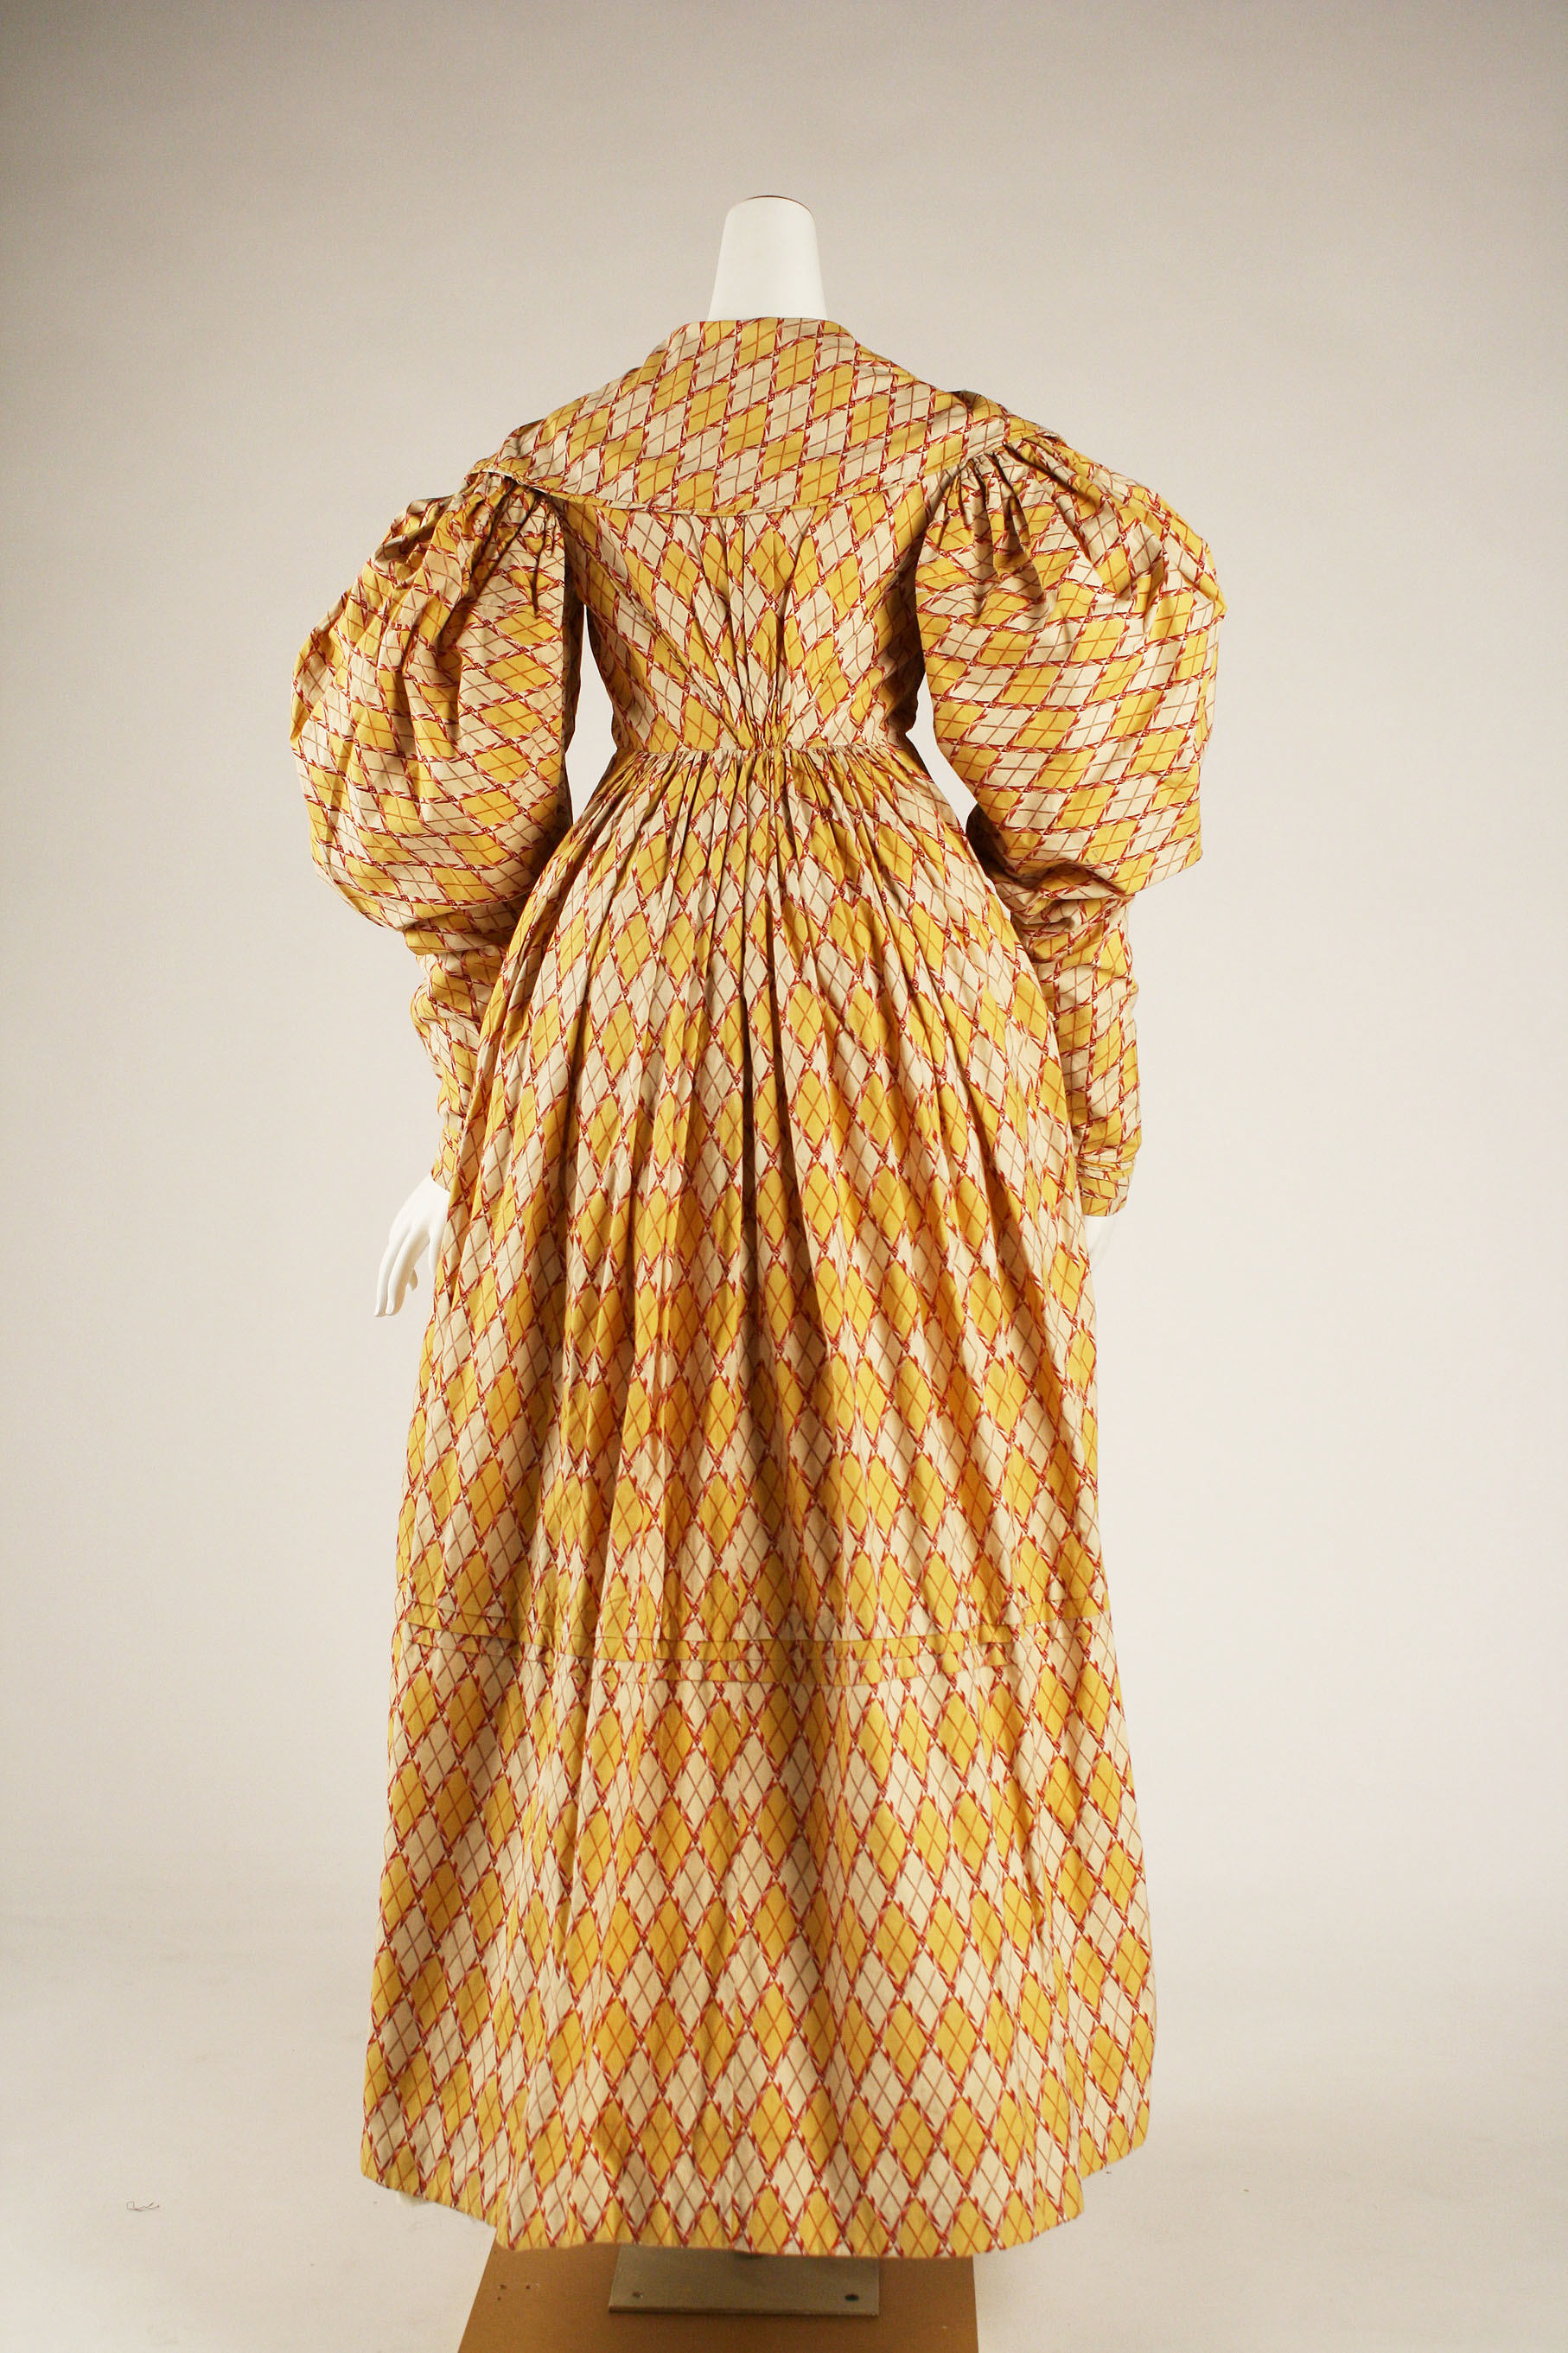 Dress, 1826–27, British, cotton, Metropolitan Museum of Art, 1981.12.1a, b